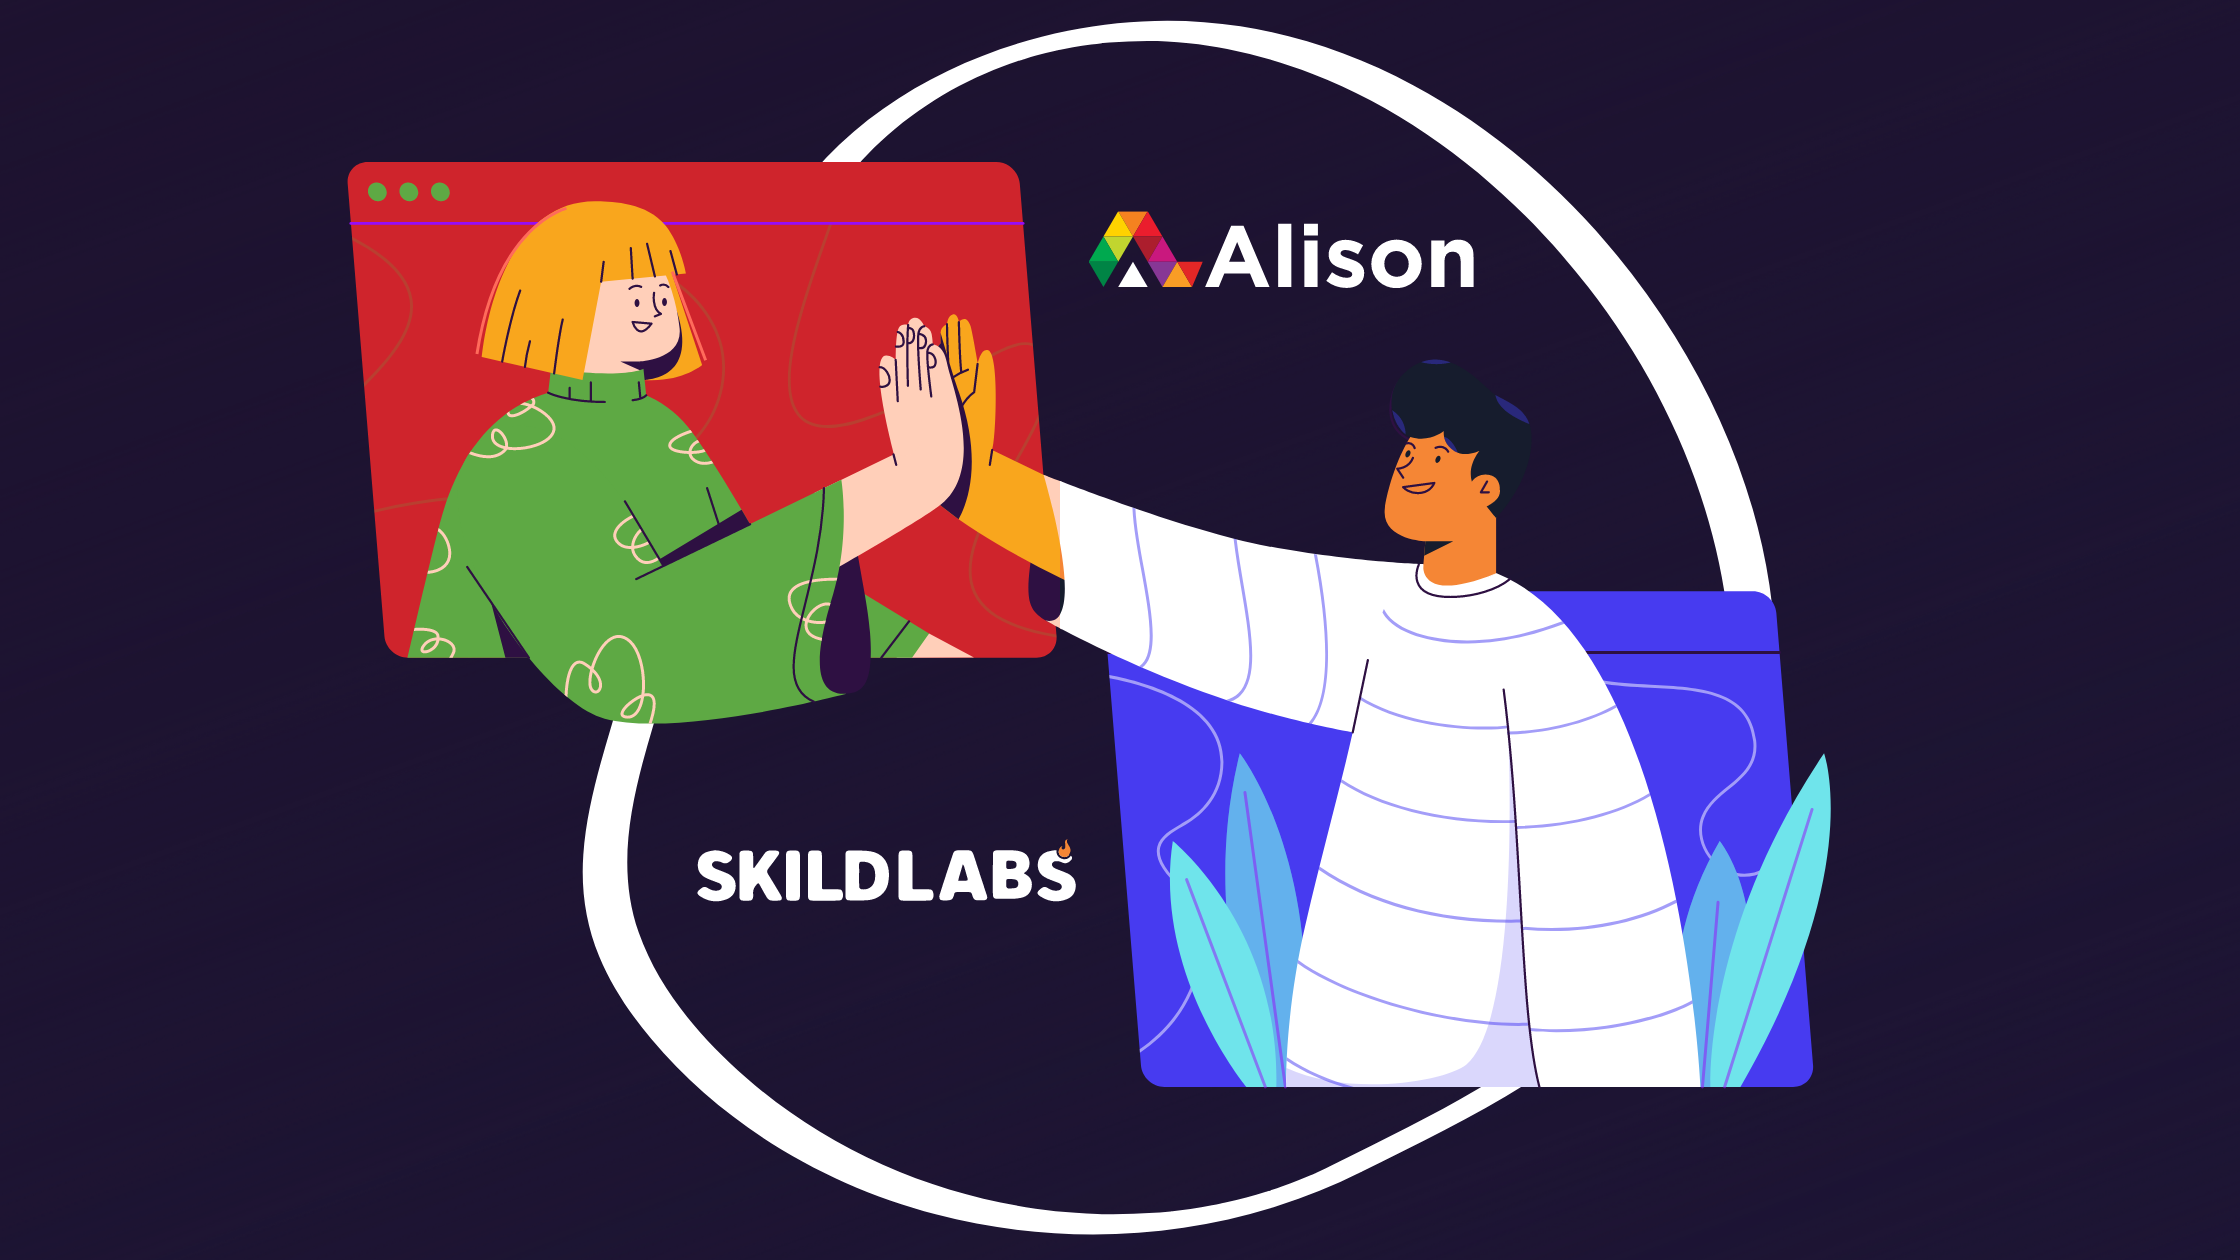 SkildLabs and Alison Partnership: Education for All!